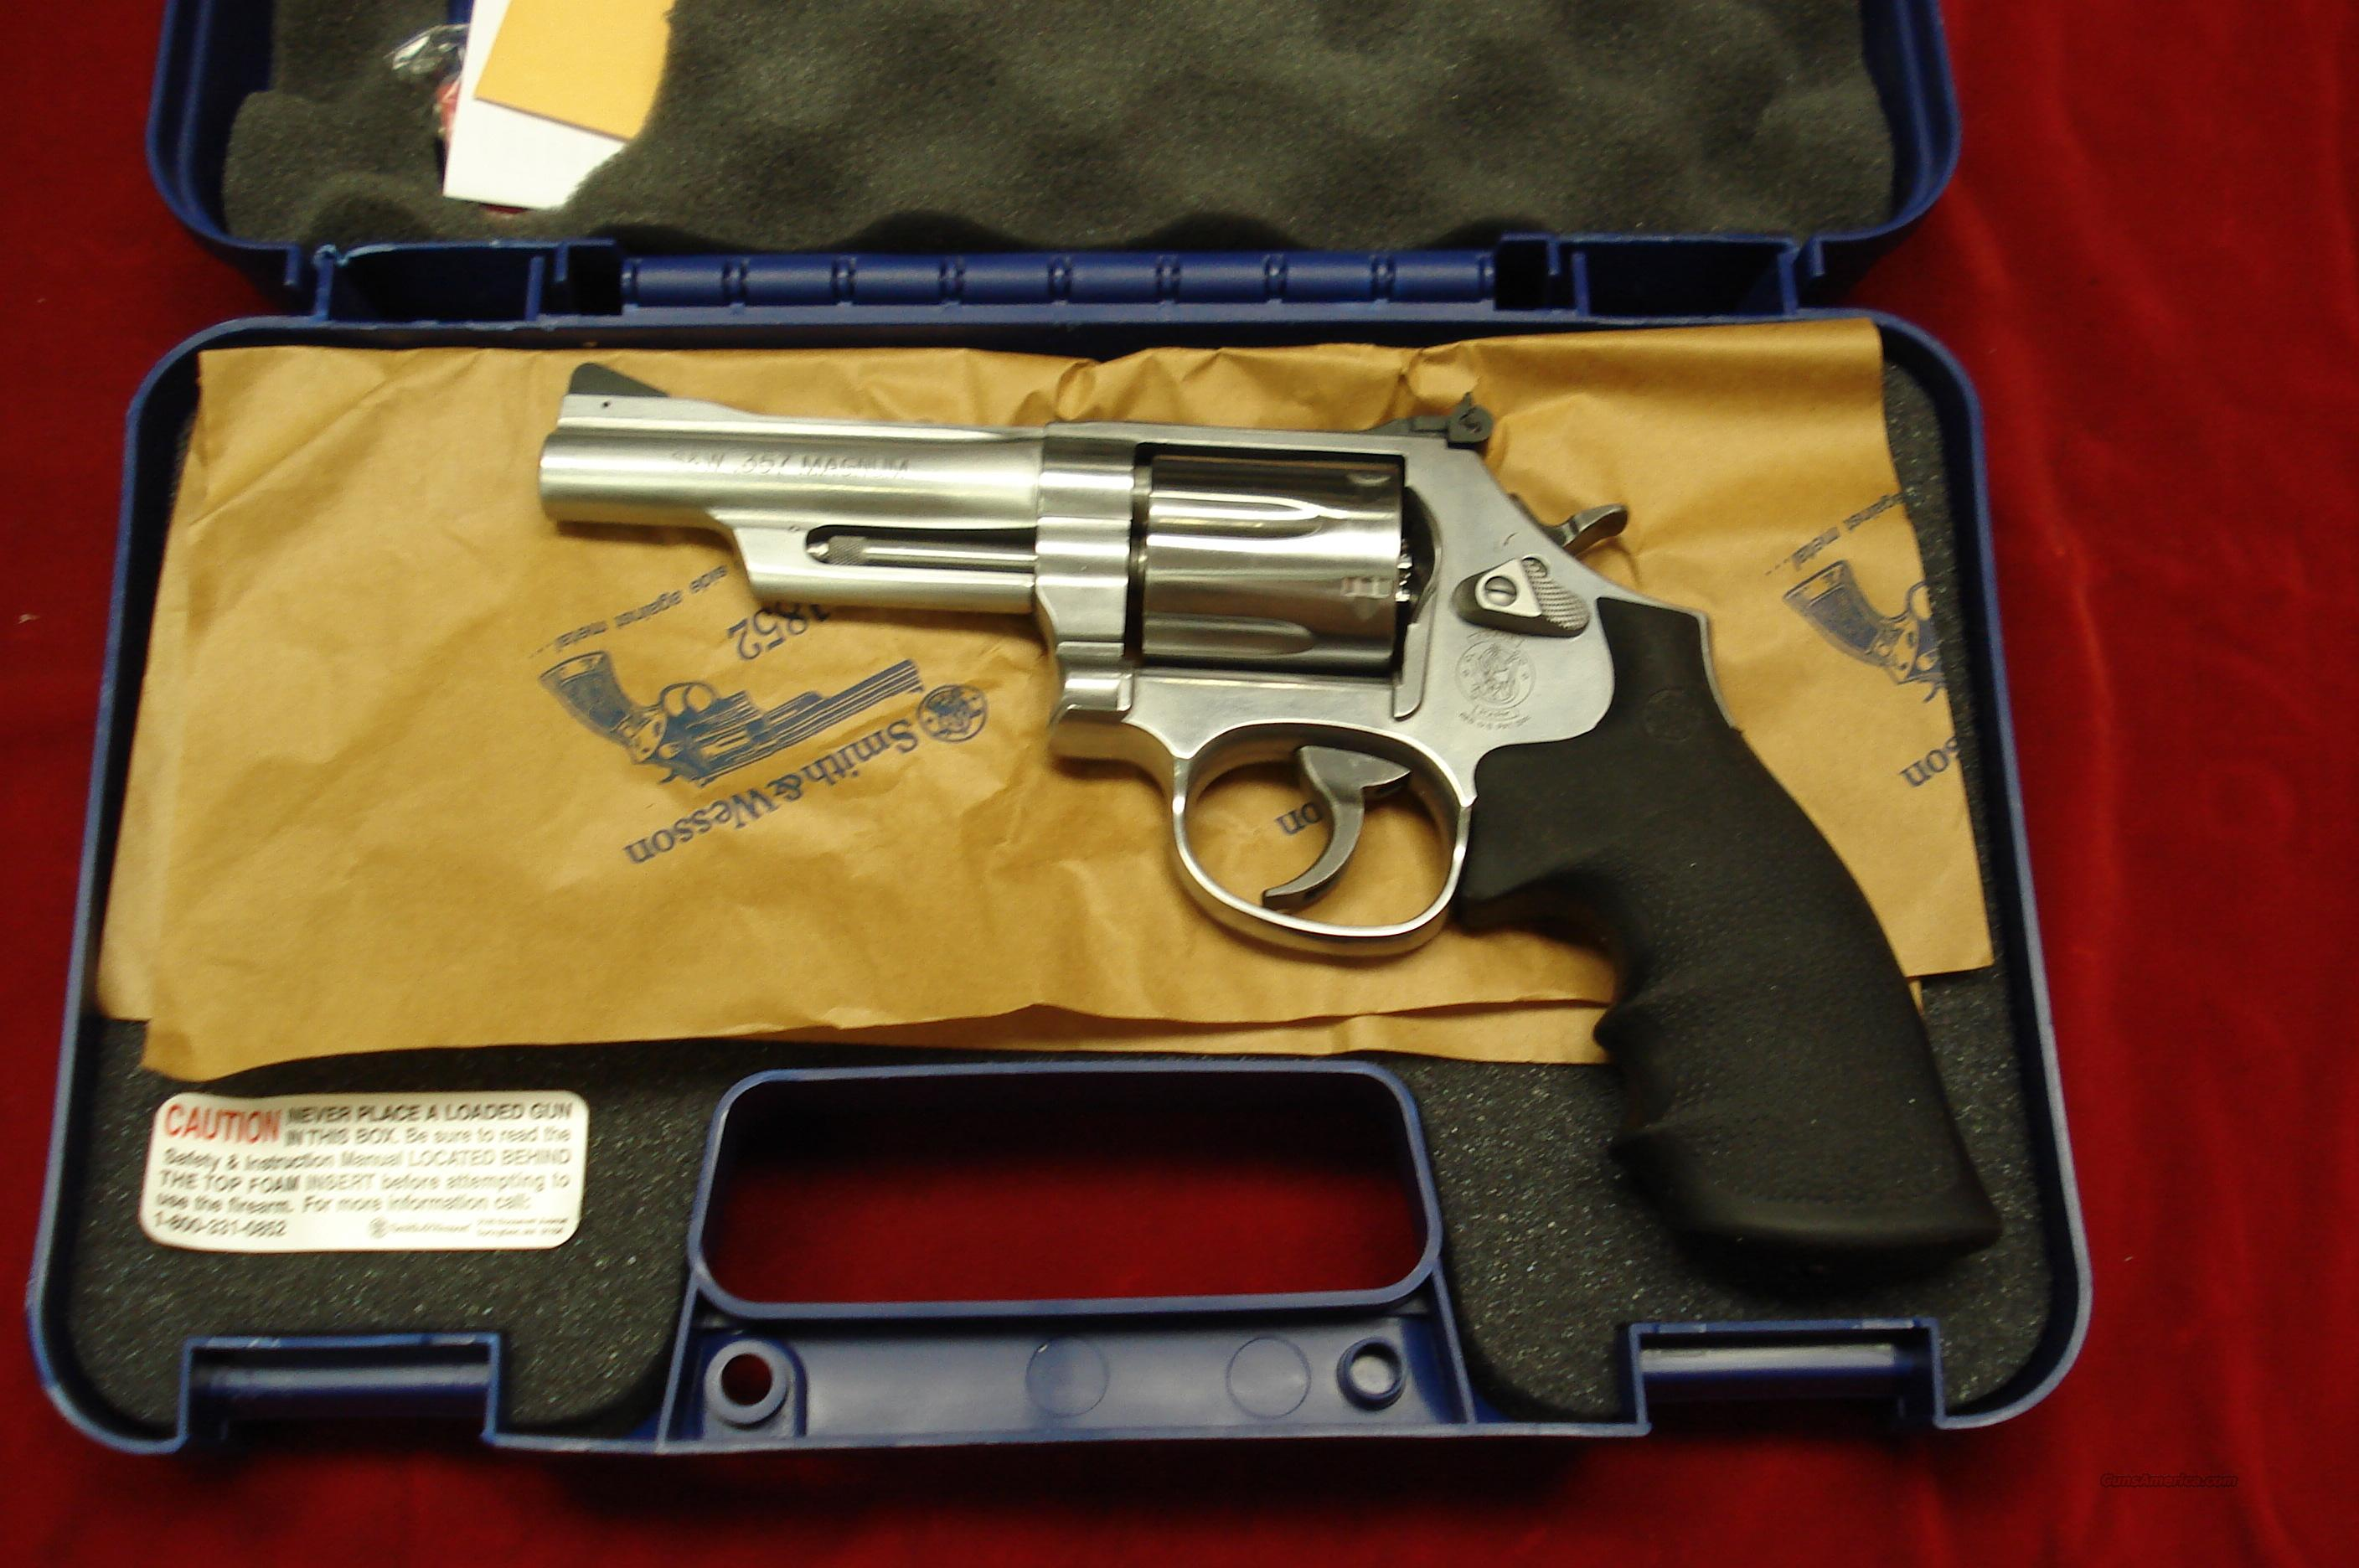 SMITH AND WESSON MODEL 686 MOUNTAIN GUN 357 MAG NEW  Guns > Pistols > Smith & Wesson Revolvers > Full Frame Revolver